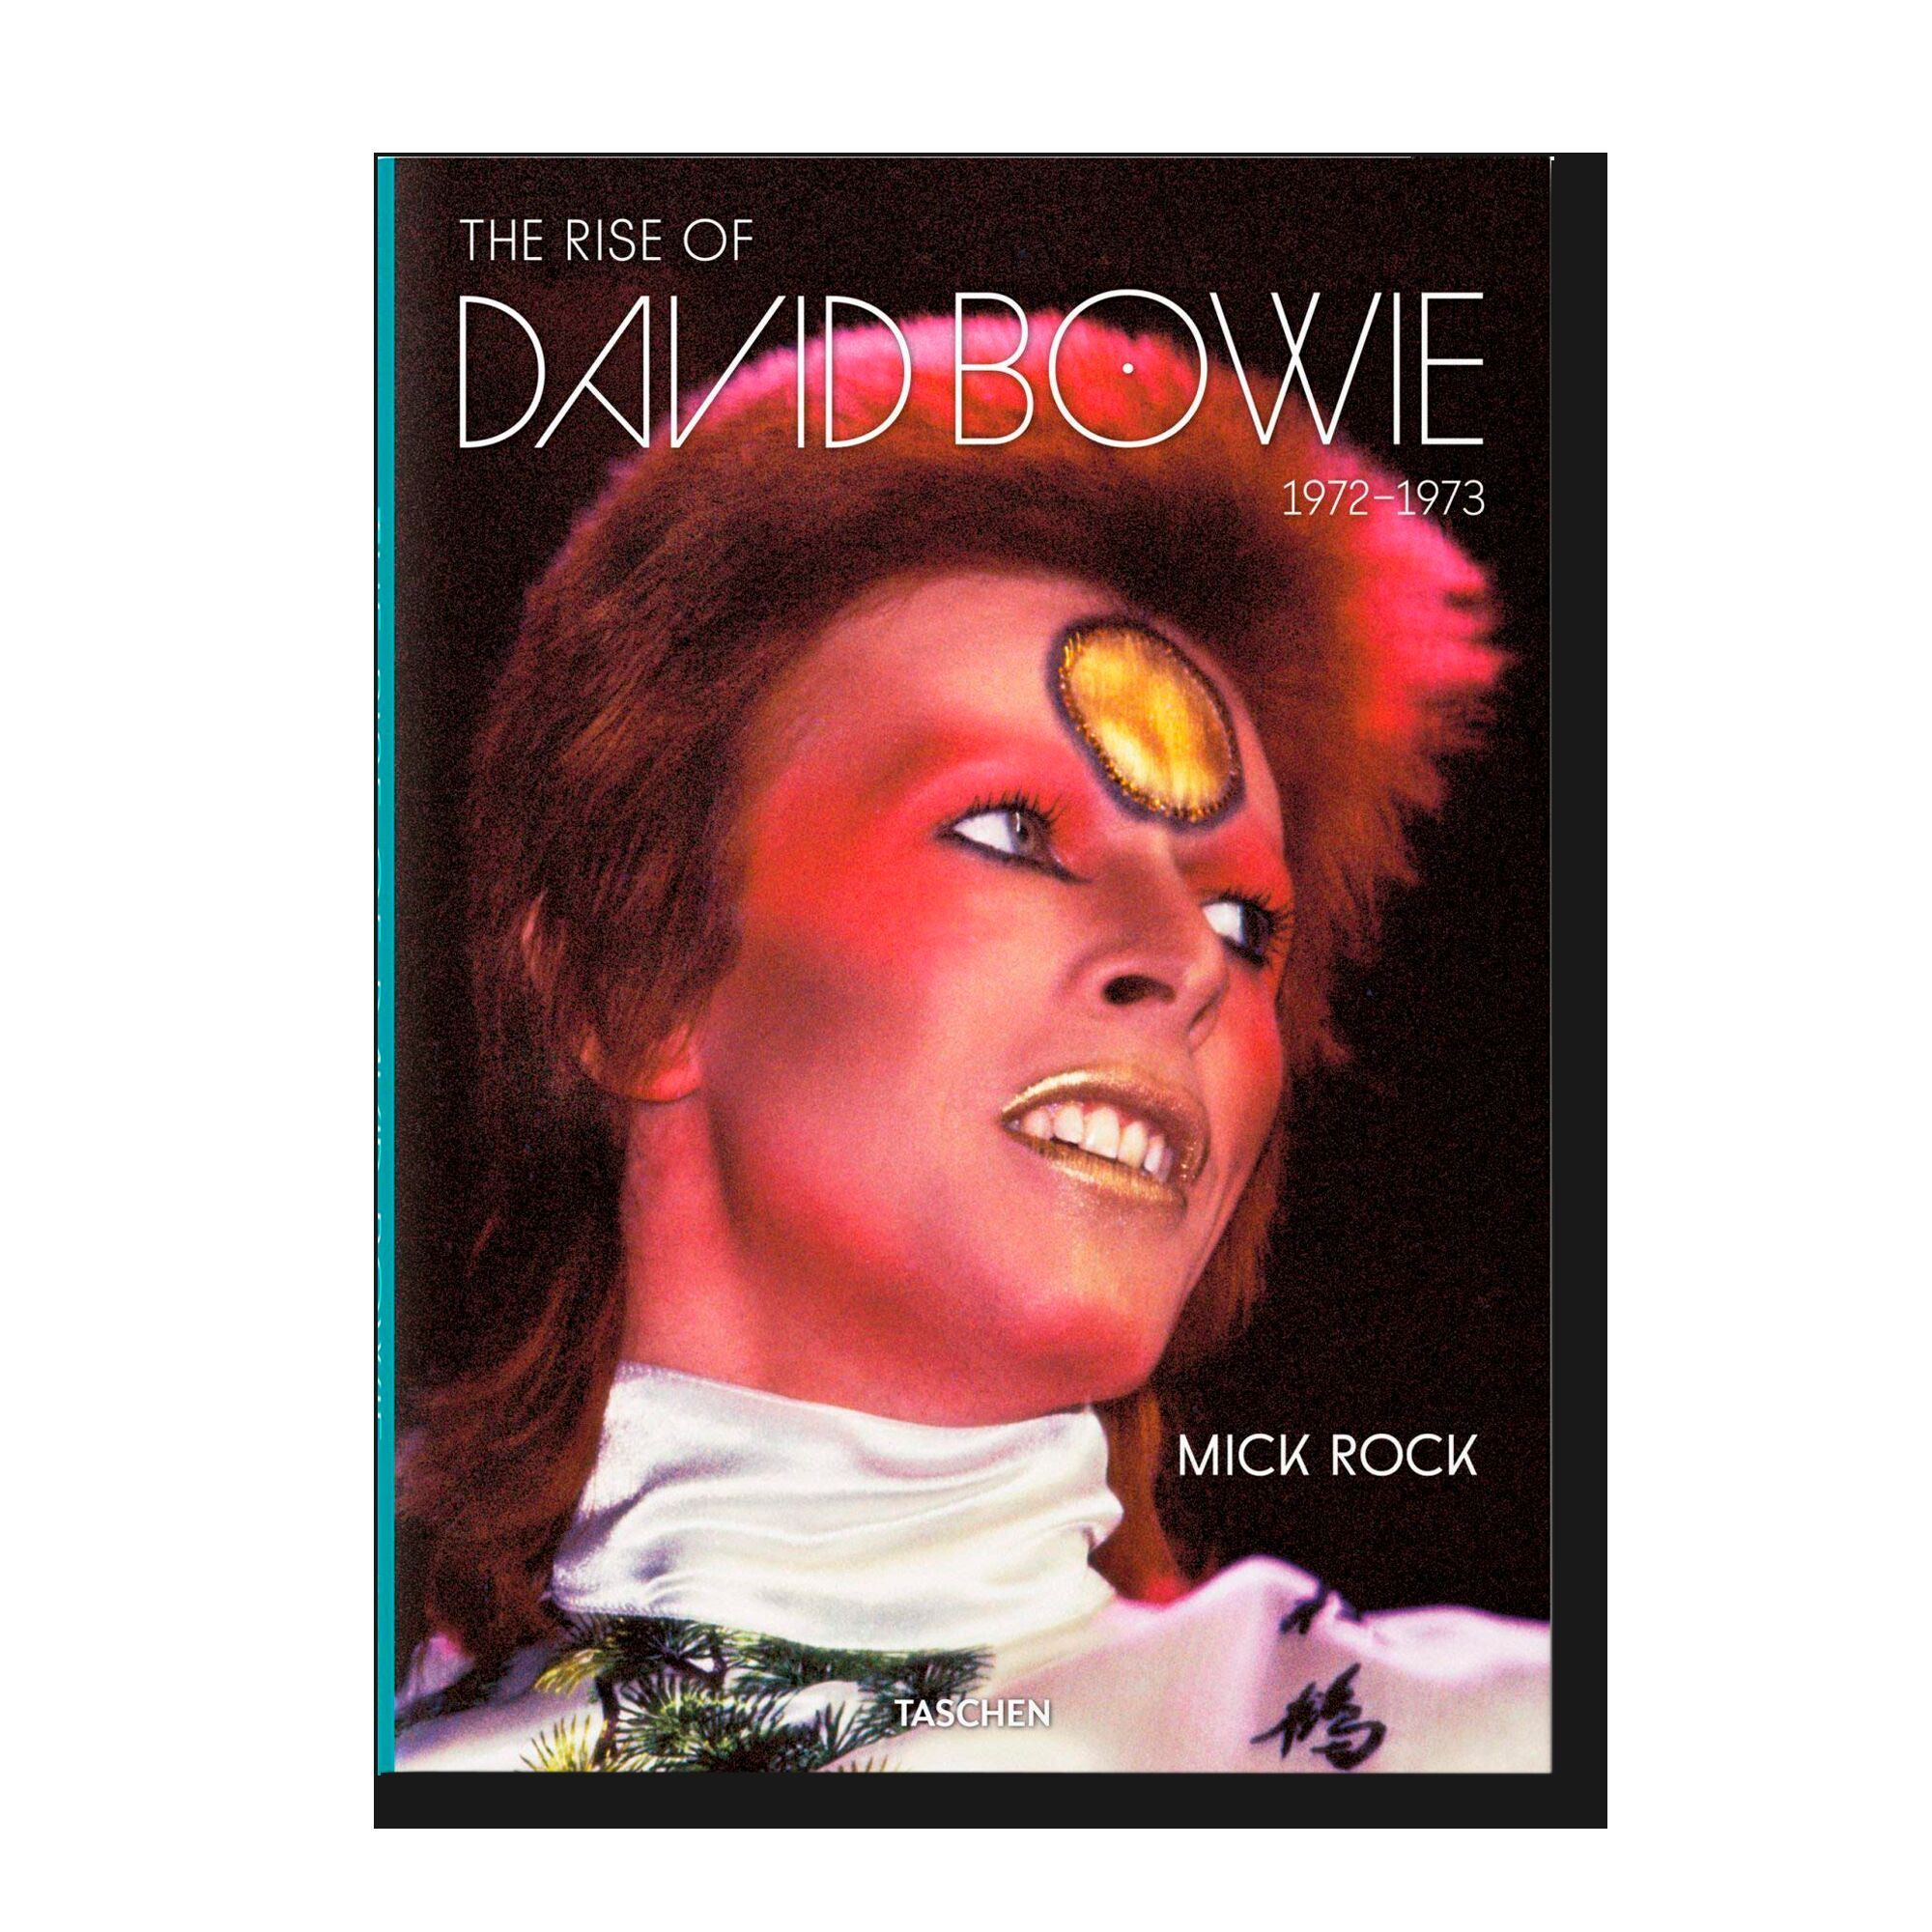 The Rise of David Bowie, 1972-1973 by Mick Rock